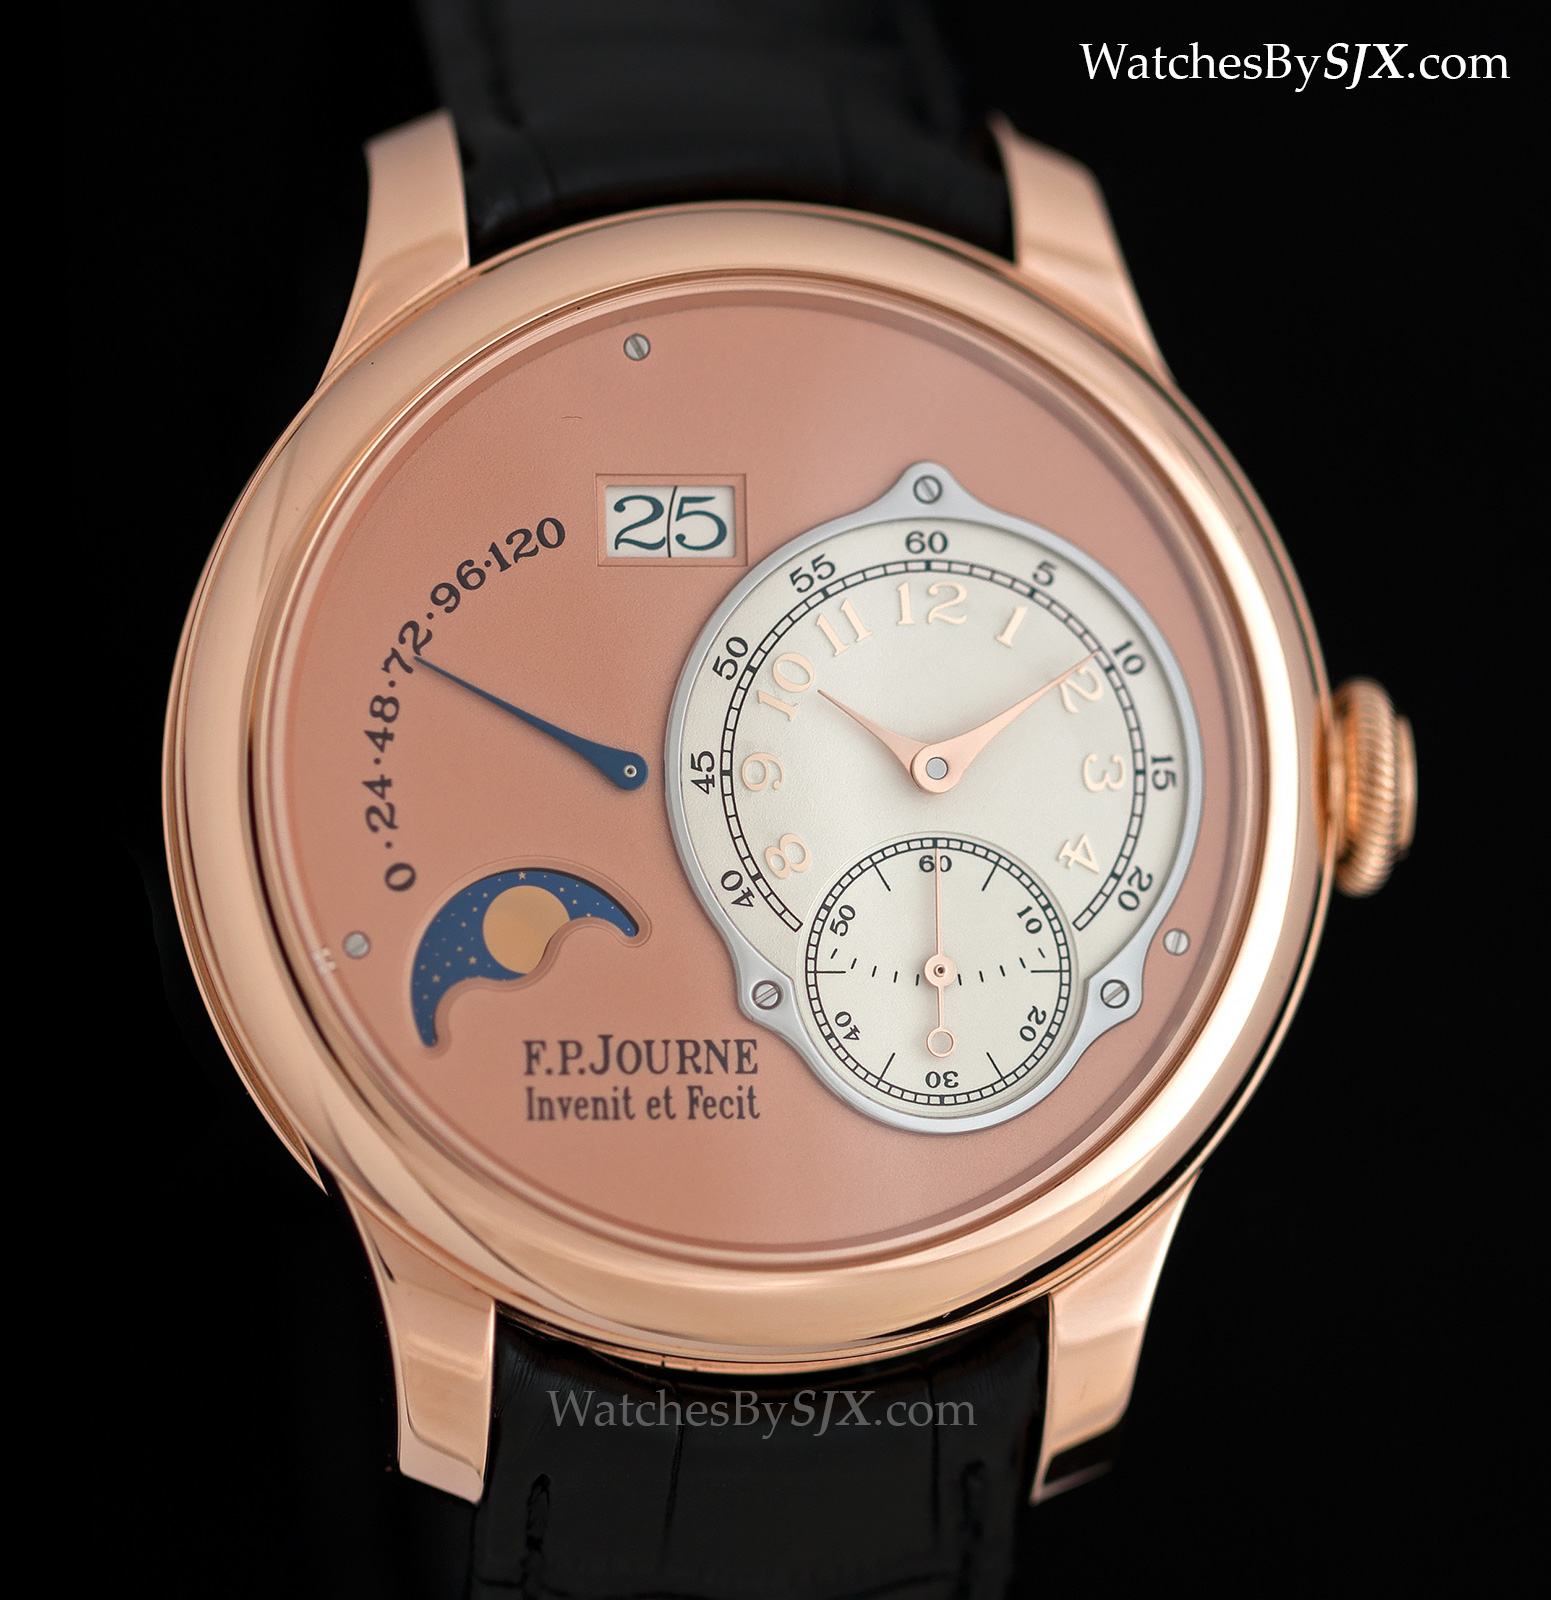 FP-Journe-Octa-Lune-New-2015-1